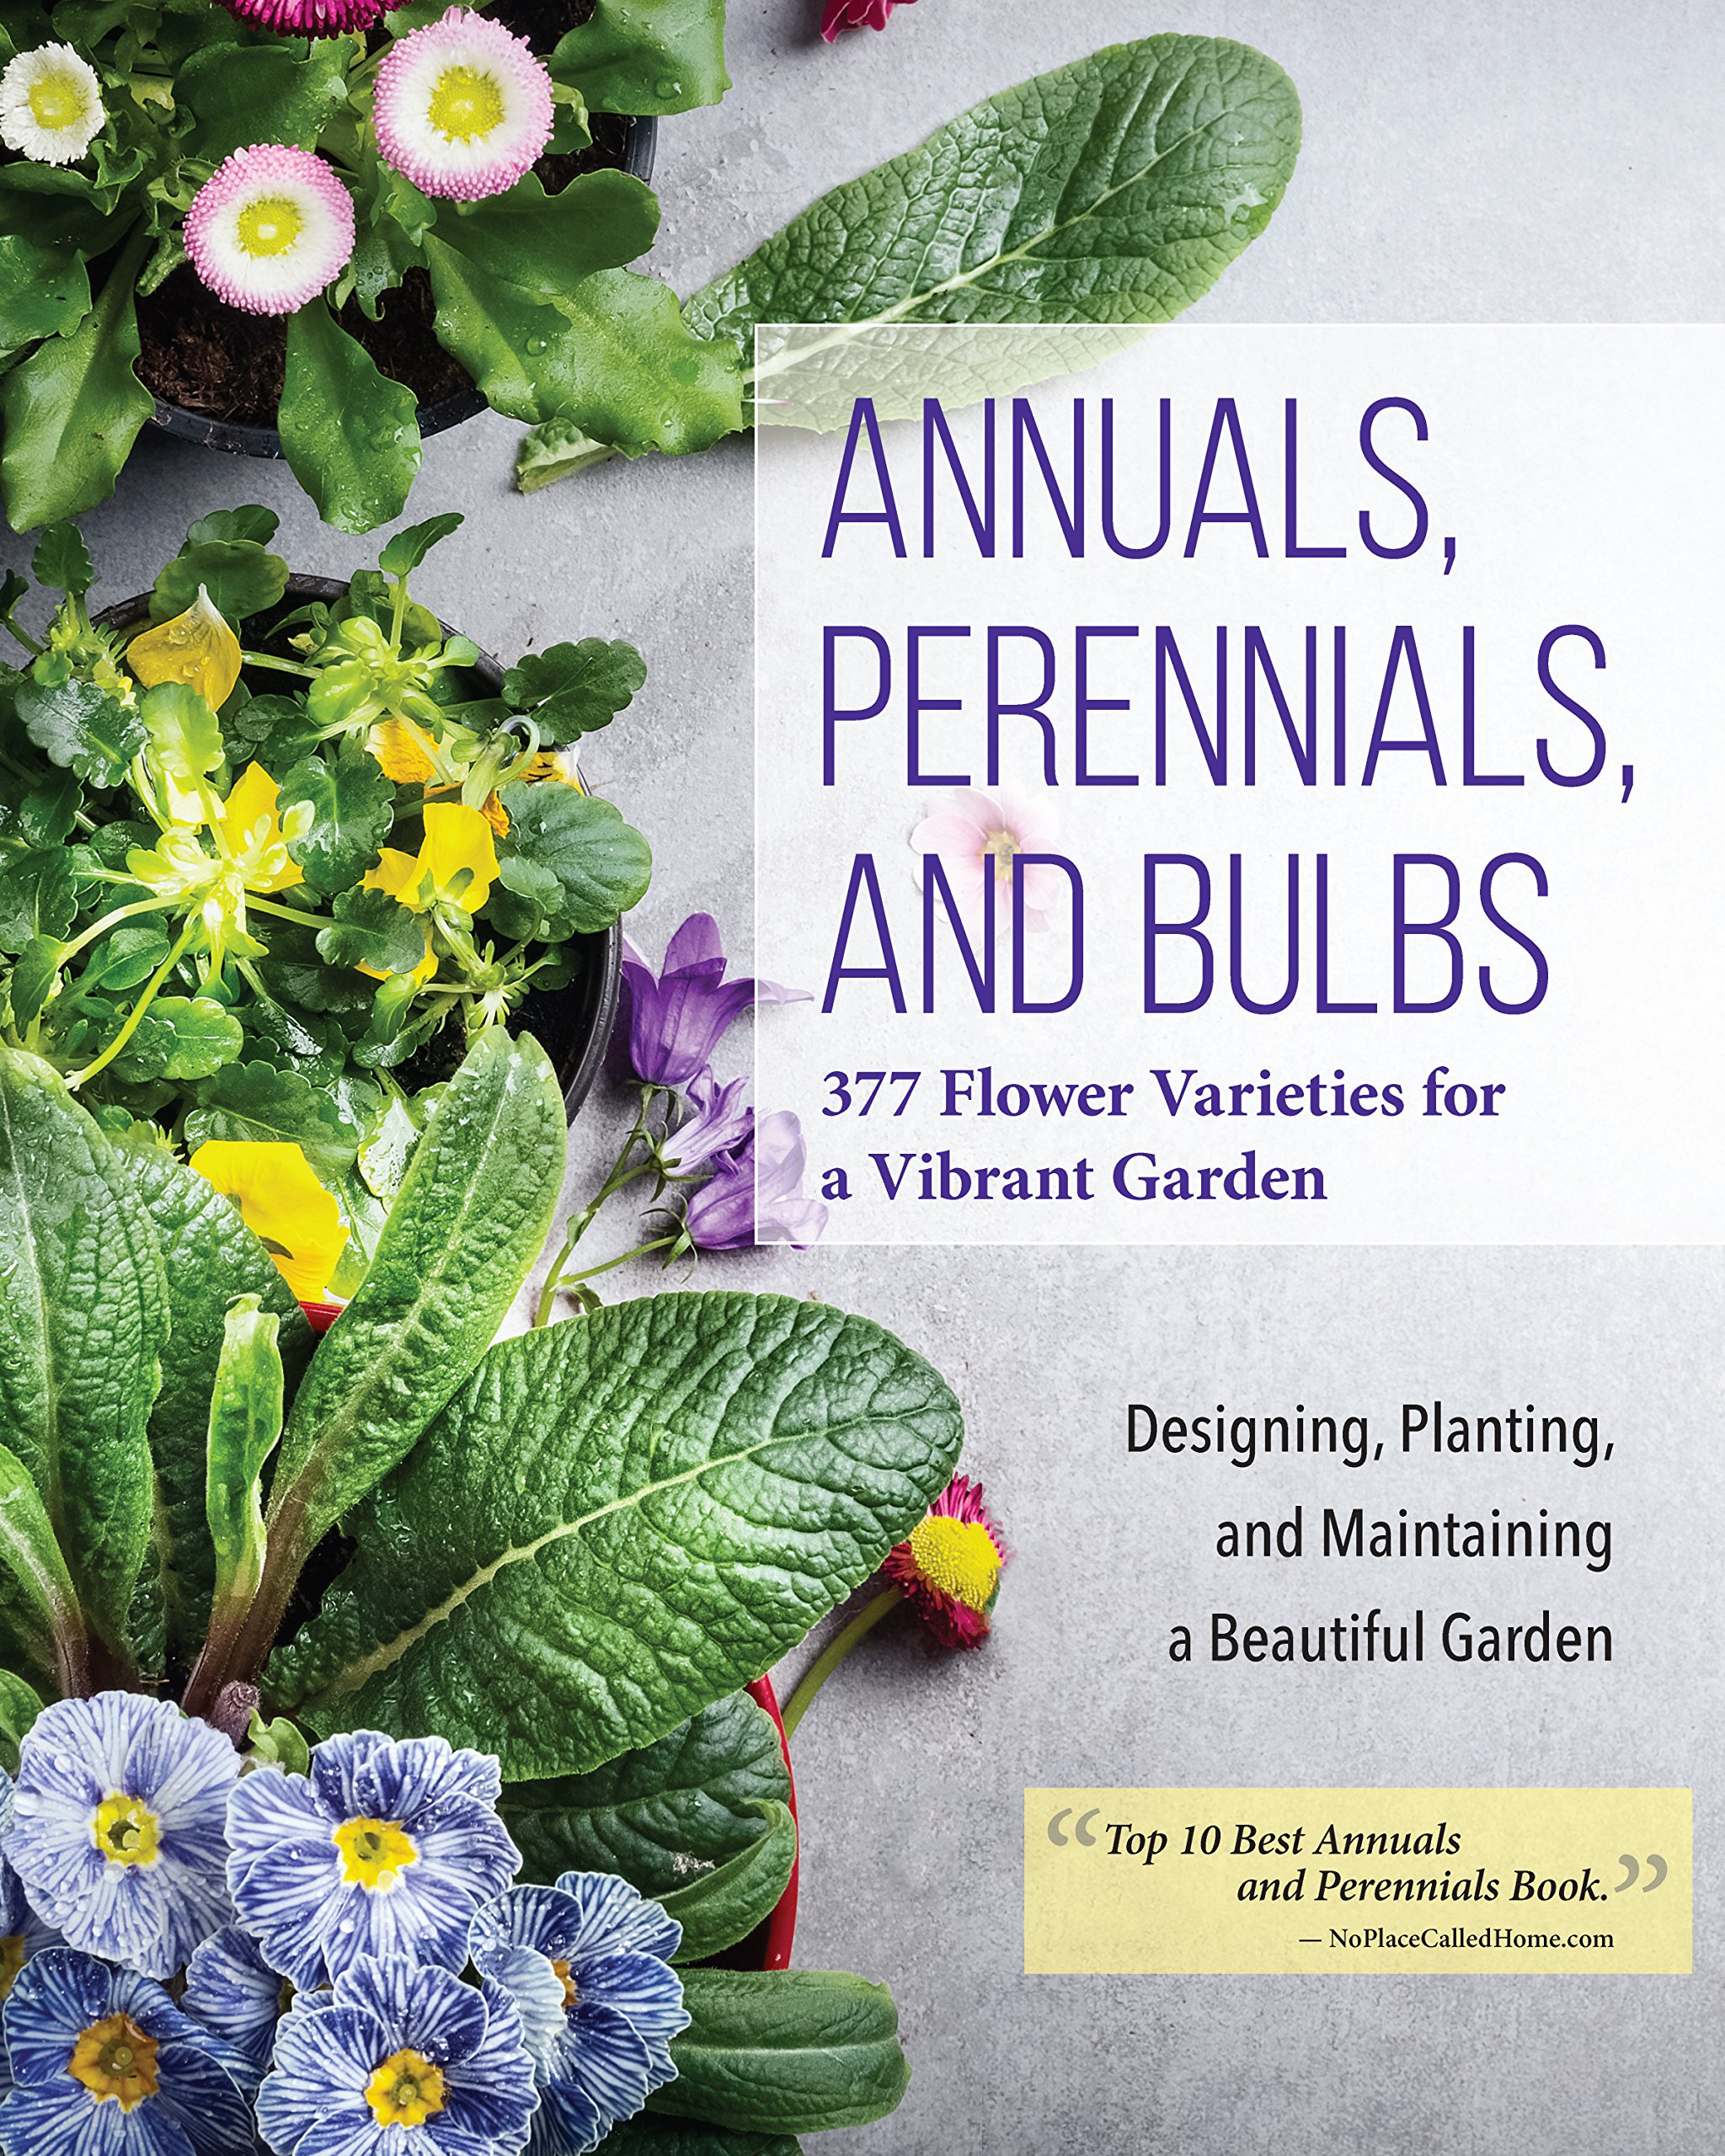 Annuals perennials and bulbs 377 flower varieties for a vibrant annuals perennials and bulbs 377 flower varieties for a vibrant garden creative homeowner 600 photos and over 40 step by step sequences to help design izmirmasajfo